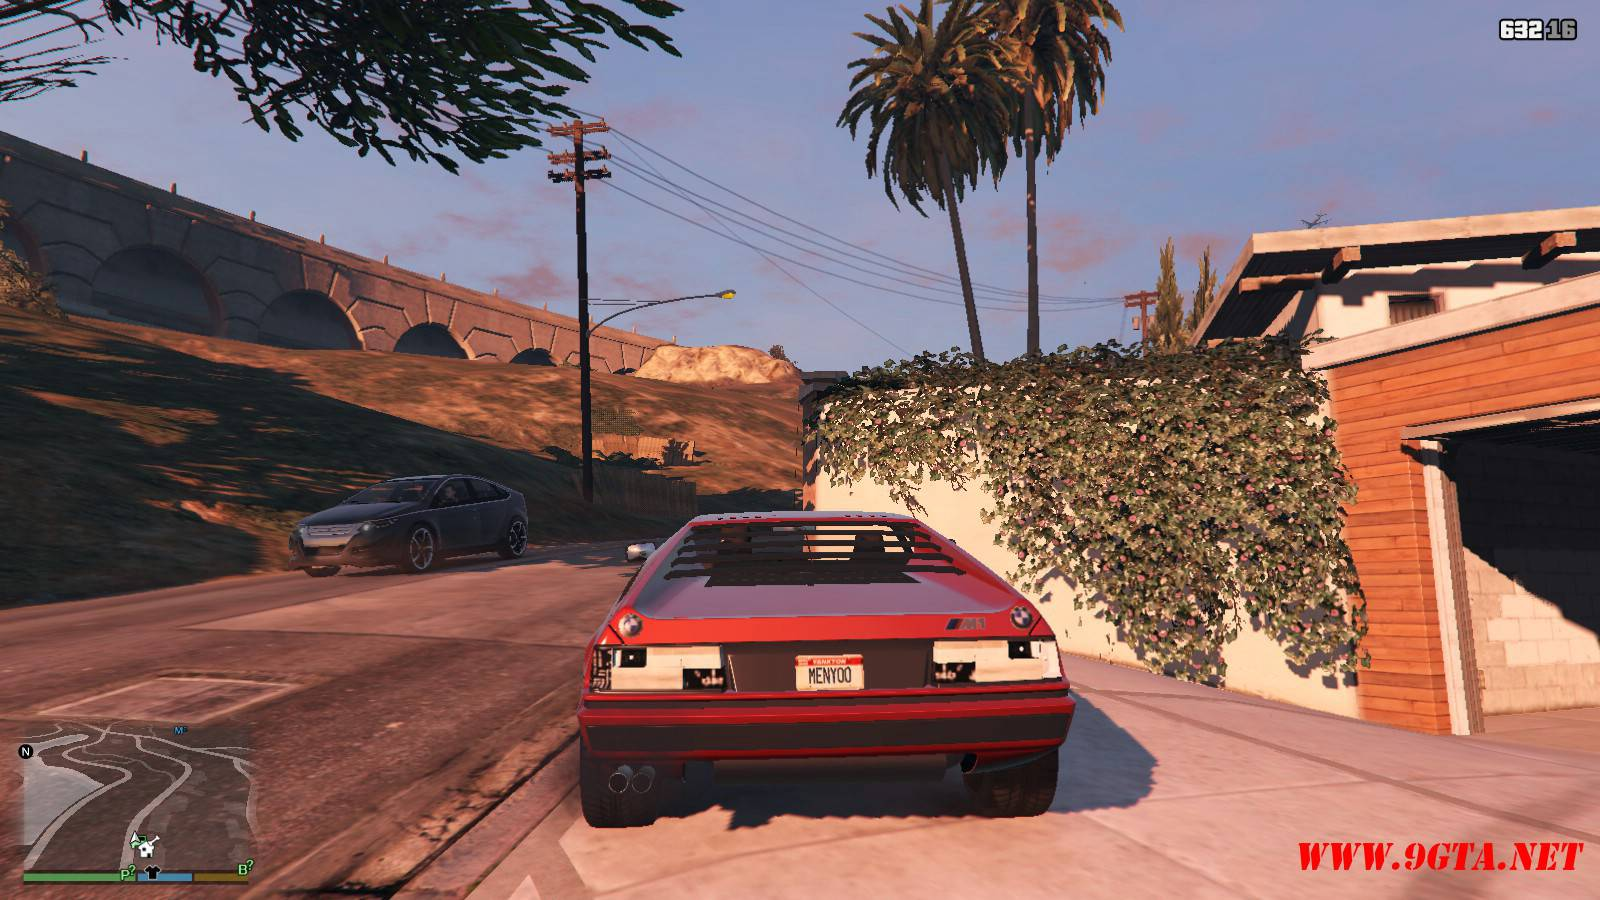 1981 BMW M1 v2.0 Mod For GTA5 (3)